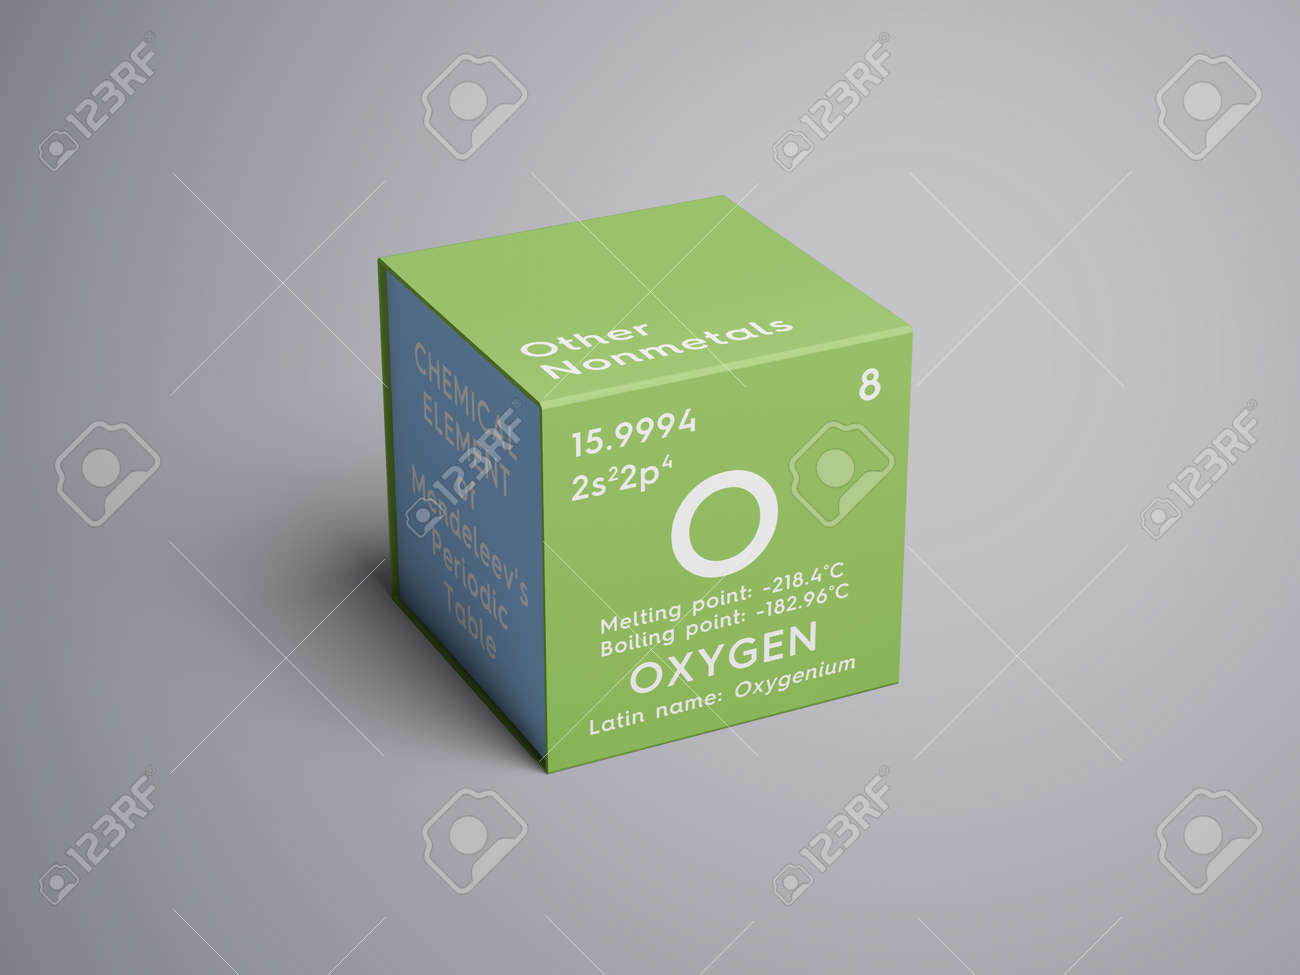 Oxygen periodic table image collections periodic table images oxygen other nonmetals chemical element of mendeleevs periodic oxygen other nonmetals chemical element of mendeleevs periodic gamestrikefo Images